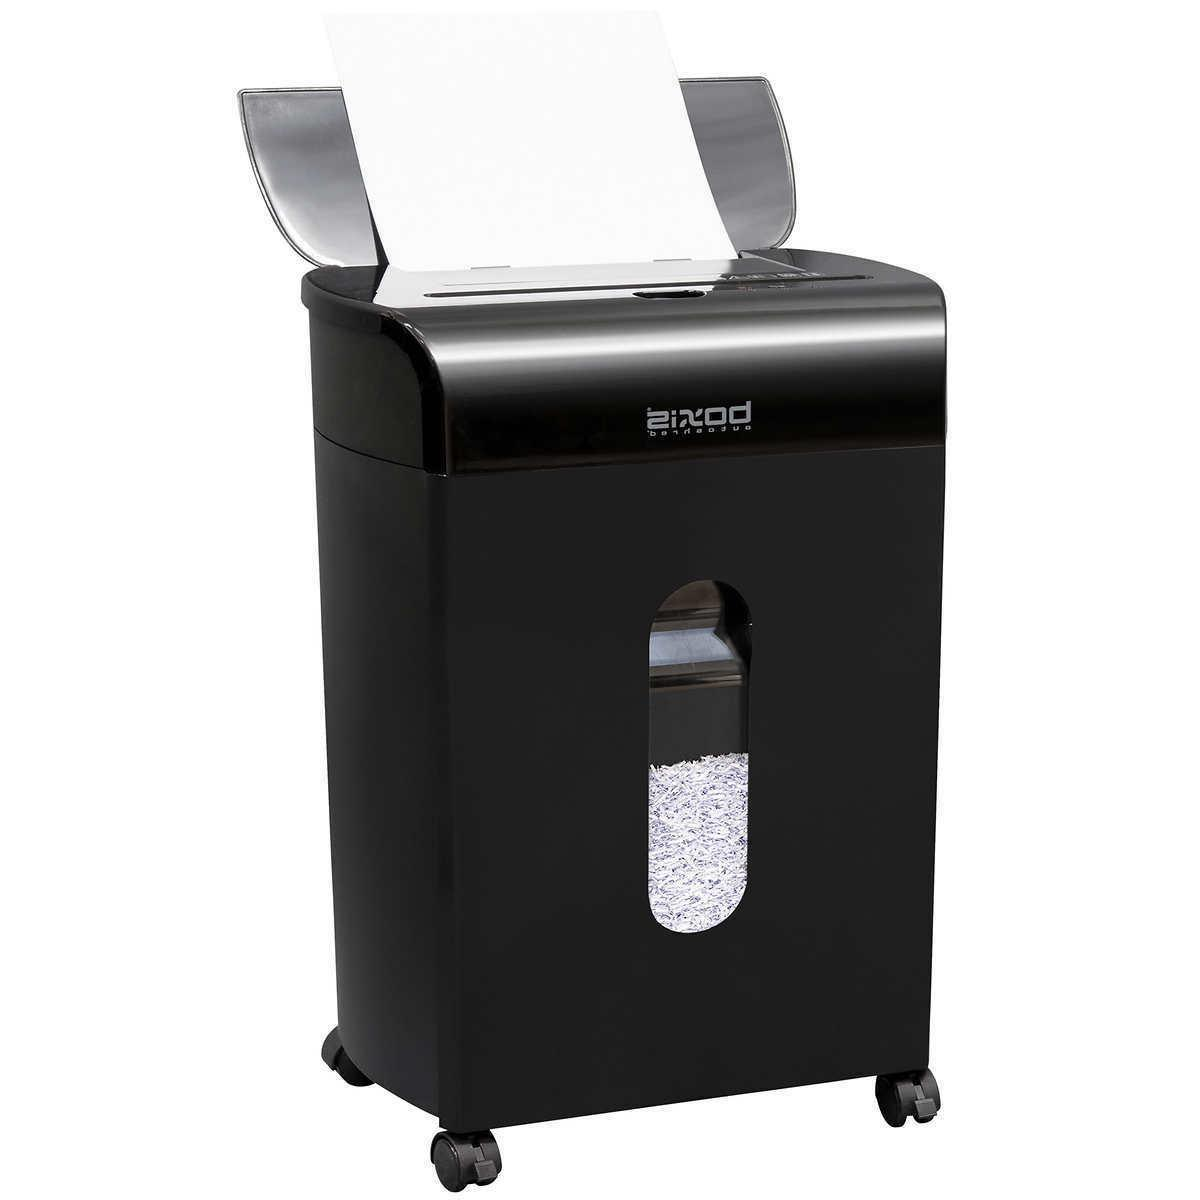 autoshred 100 sheet autofeed microcut shredder